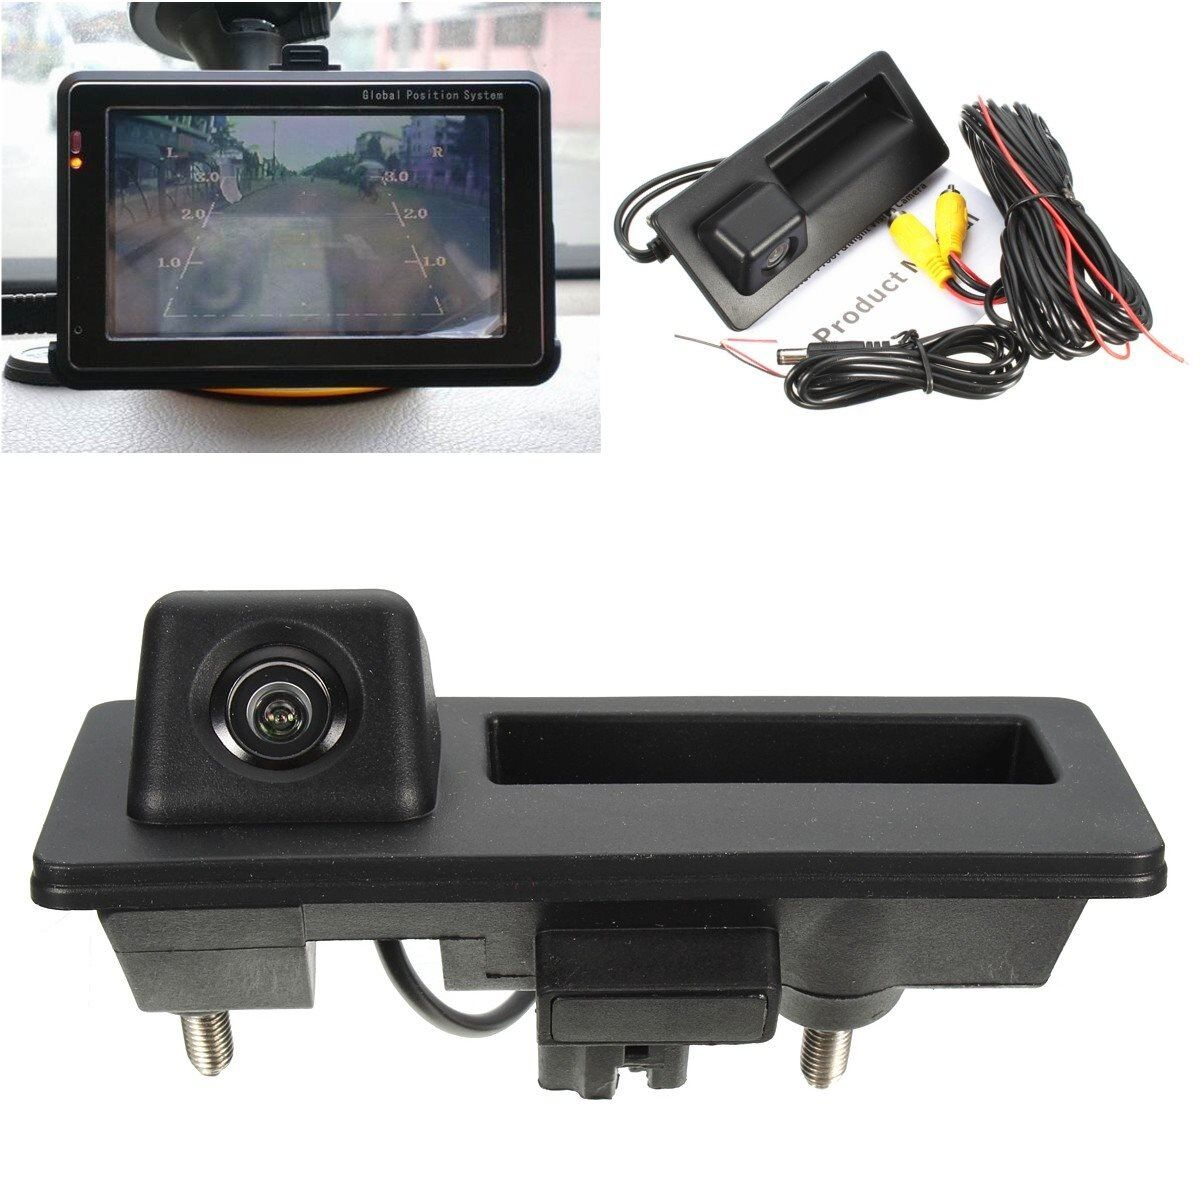 Hot Car Rear View Cameras Reversing Reverse Camera For VW /JETTA /TIGUAN /RCD510 /RNS315 /RNS310 /RNS510